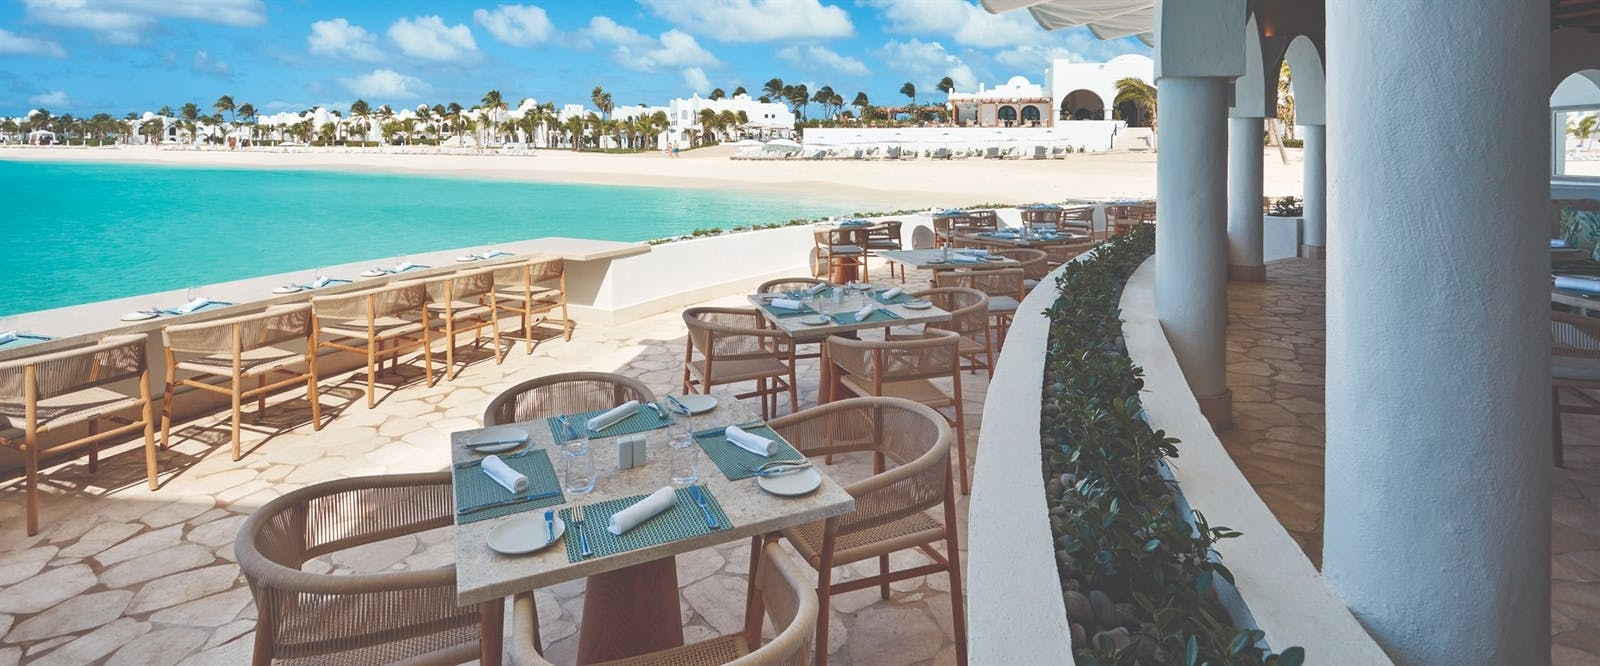 Cip's by Cipriani at Belmond Cap Juluca, Anguilla